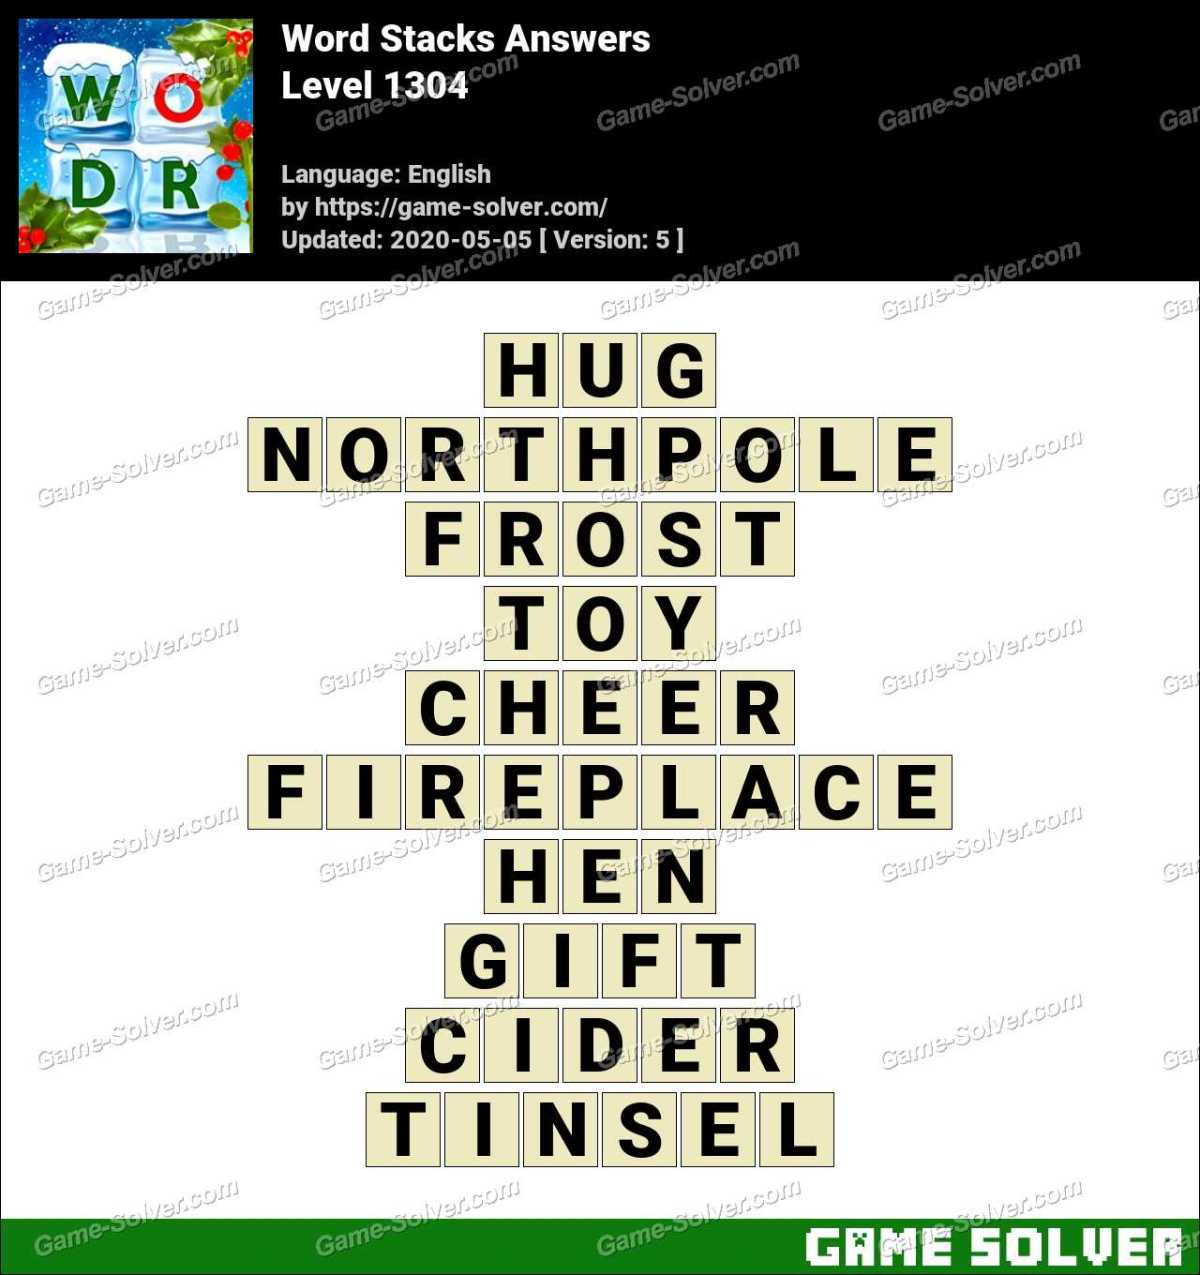 Word Stacks Level 1304 Answers